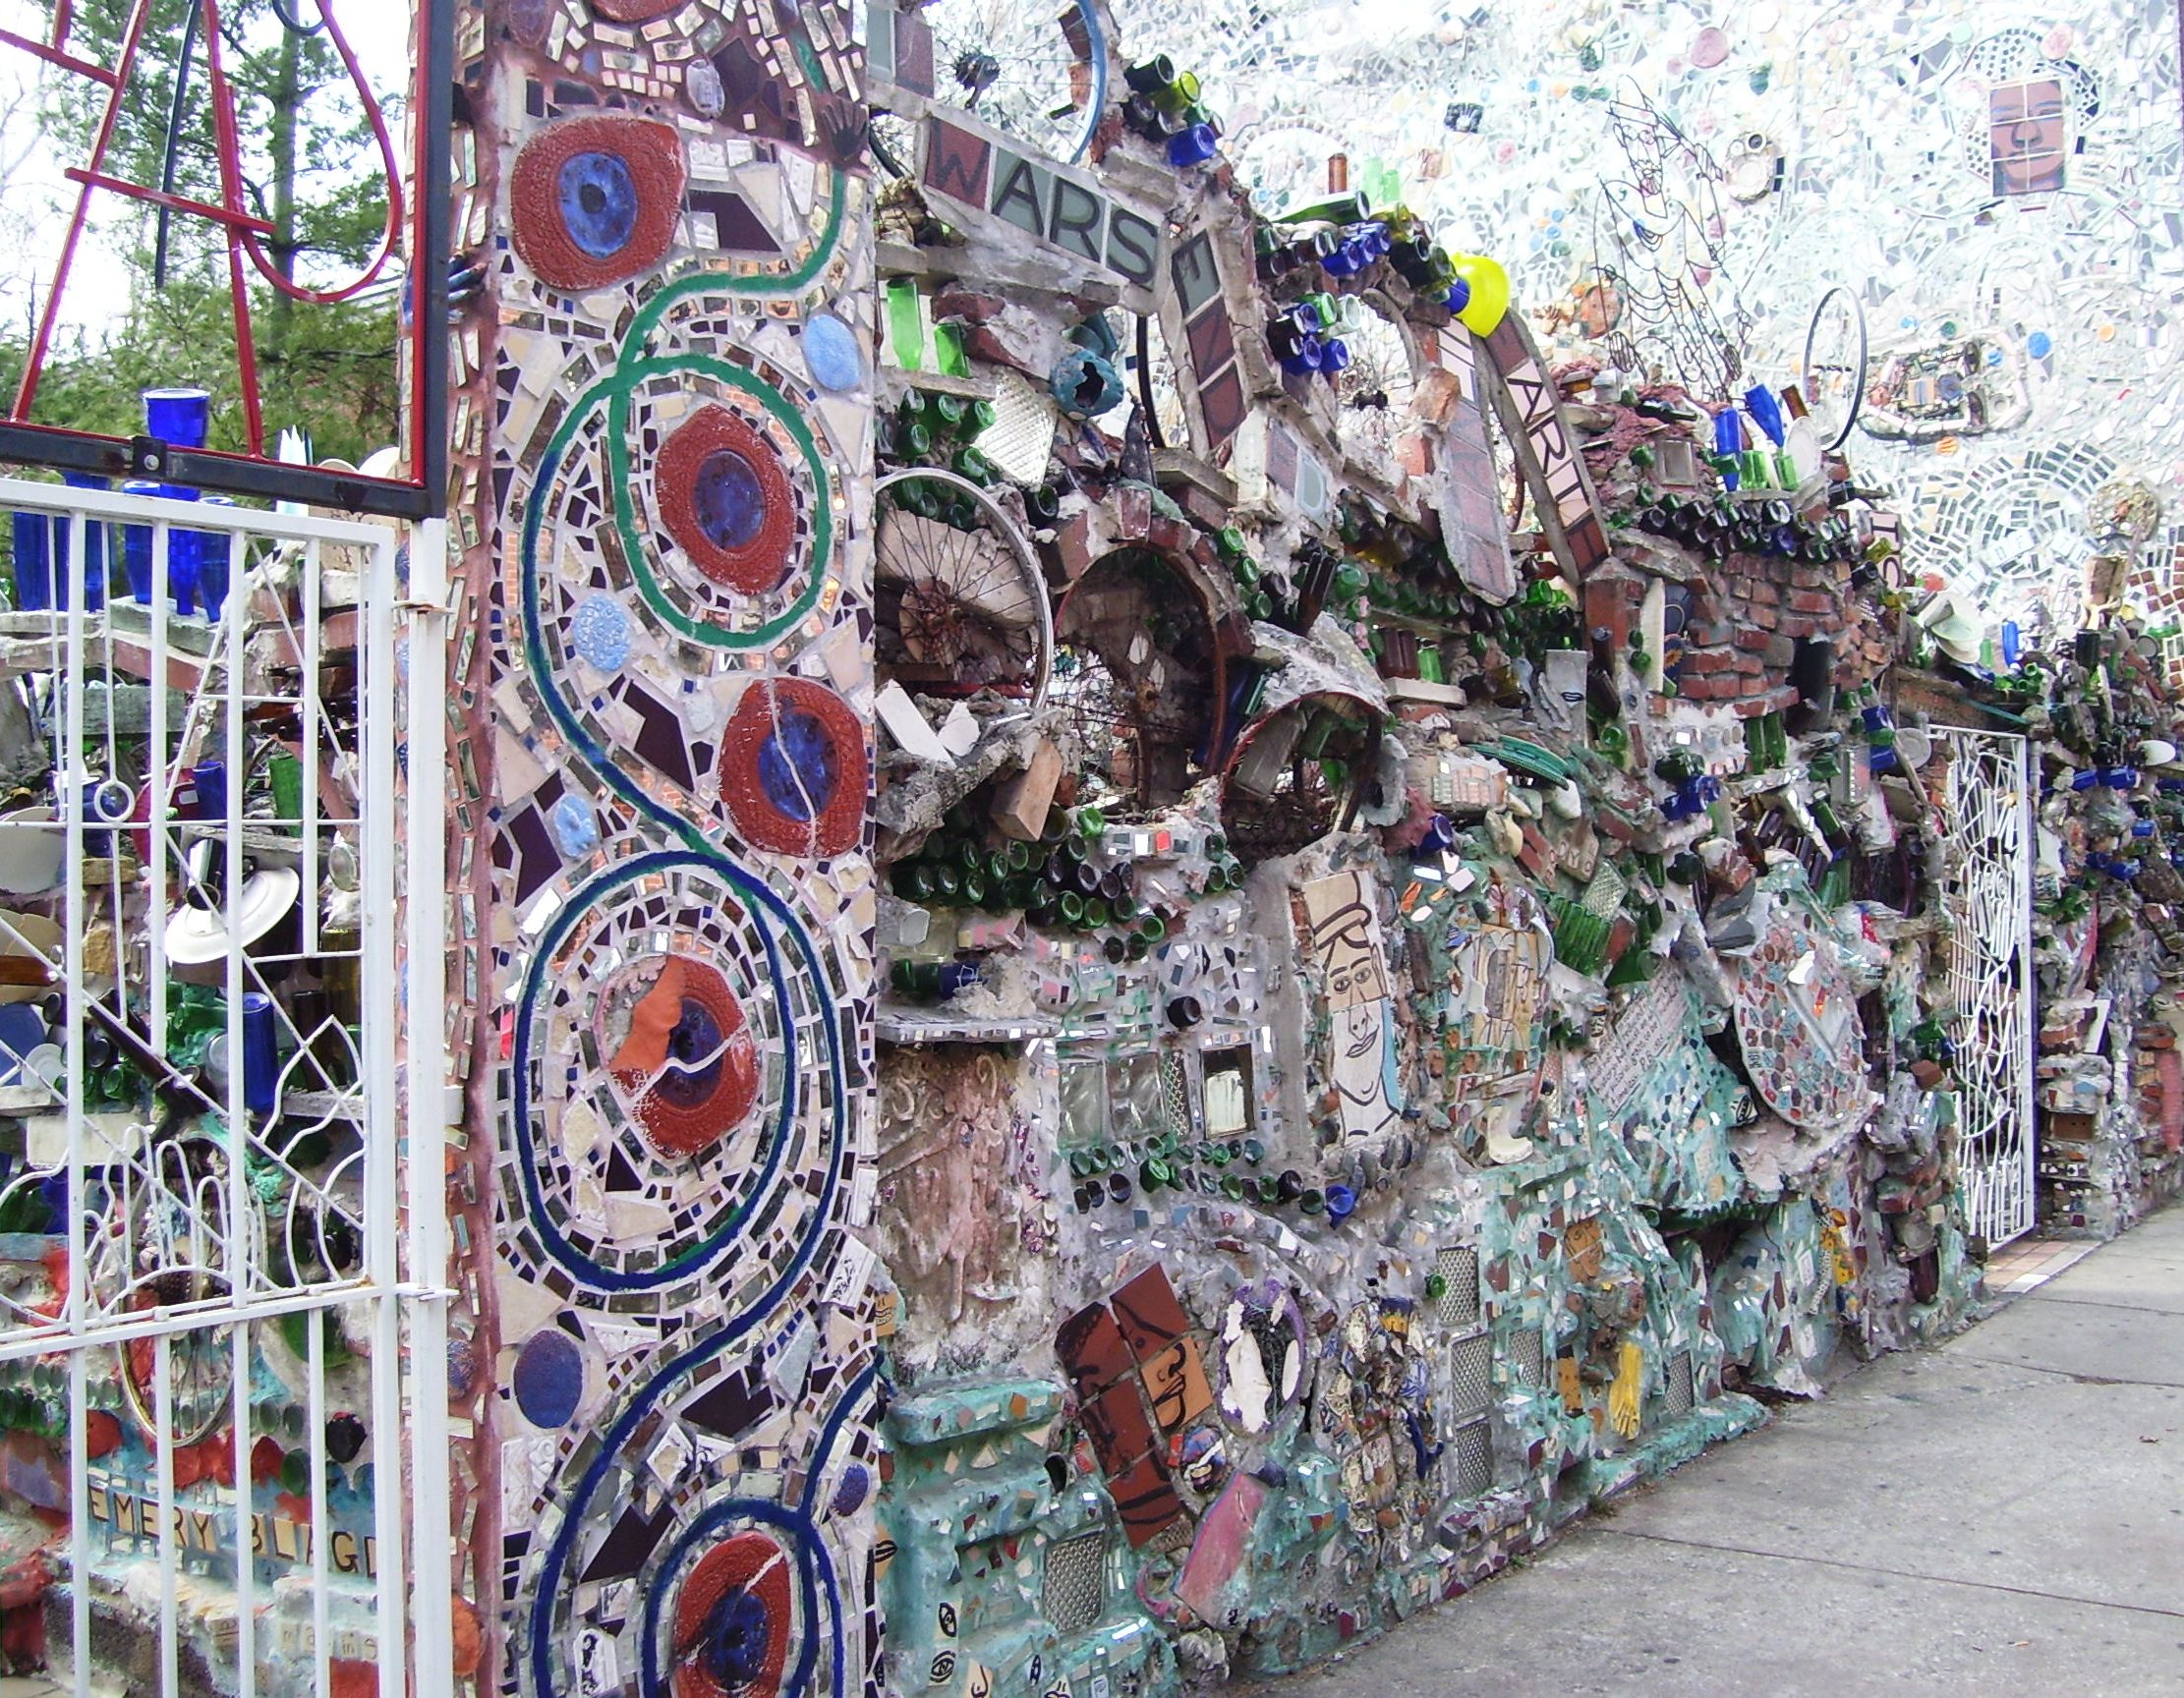 Exceptional File:Isaiah Zagar Magic Gardens 1020 South Street Philadephia Front